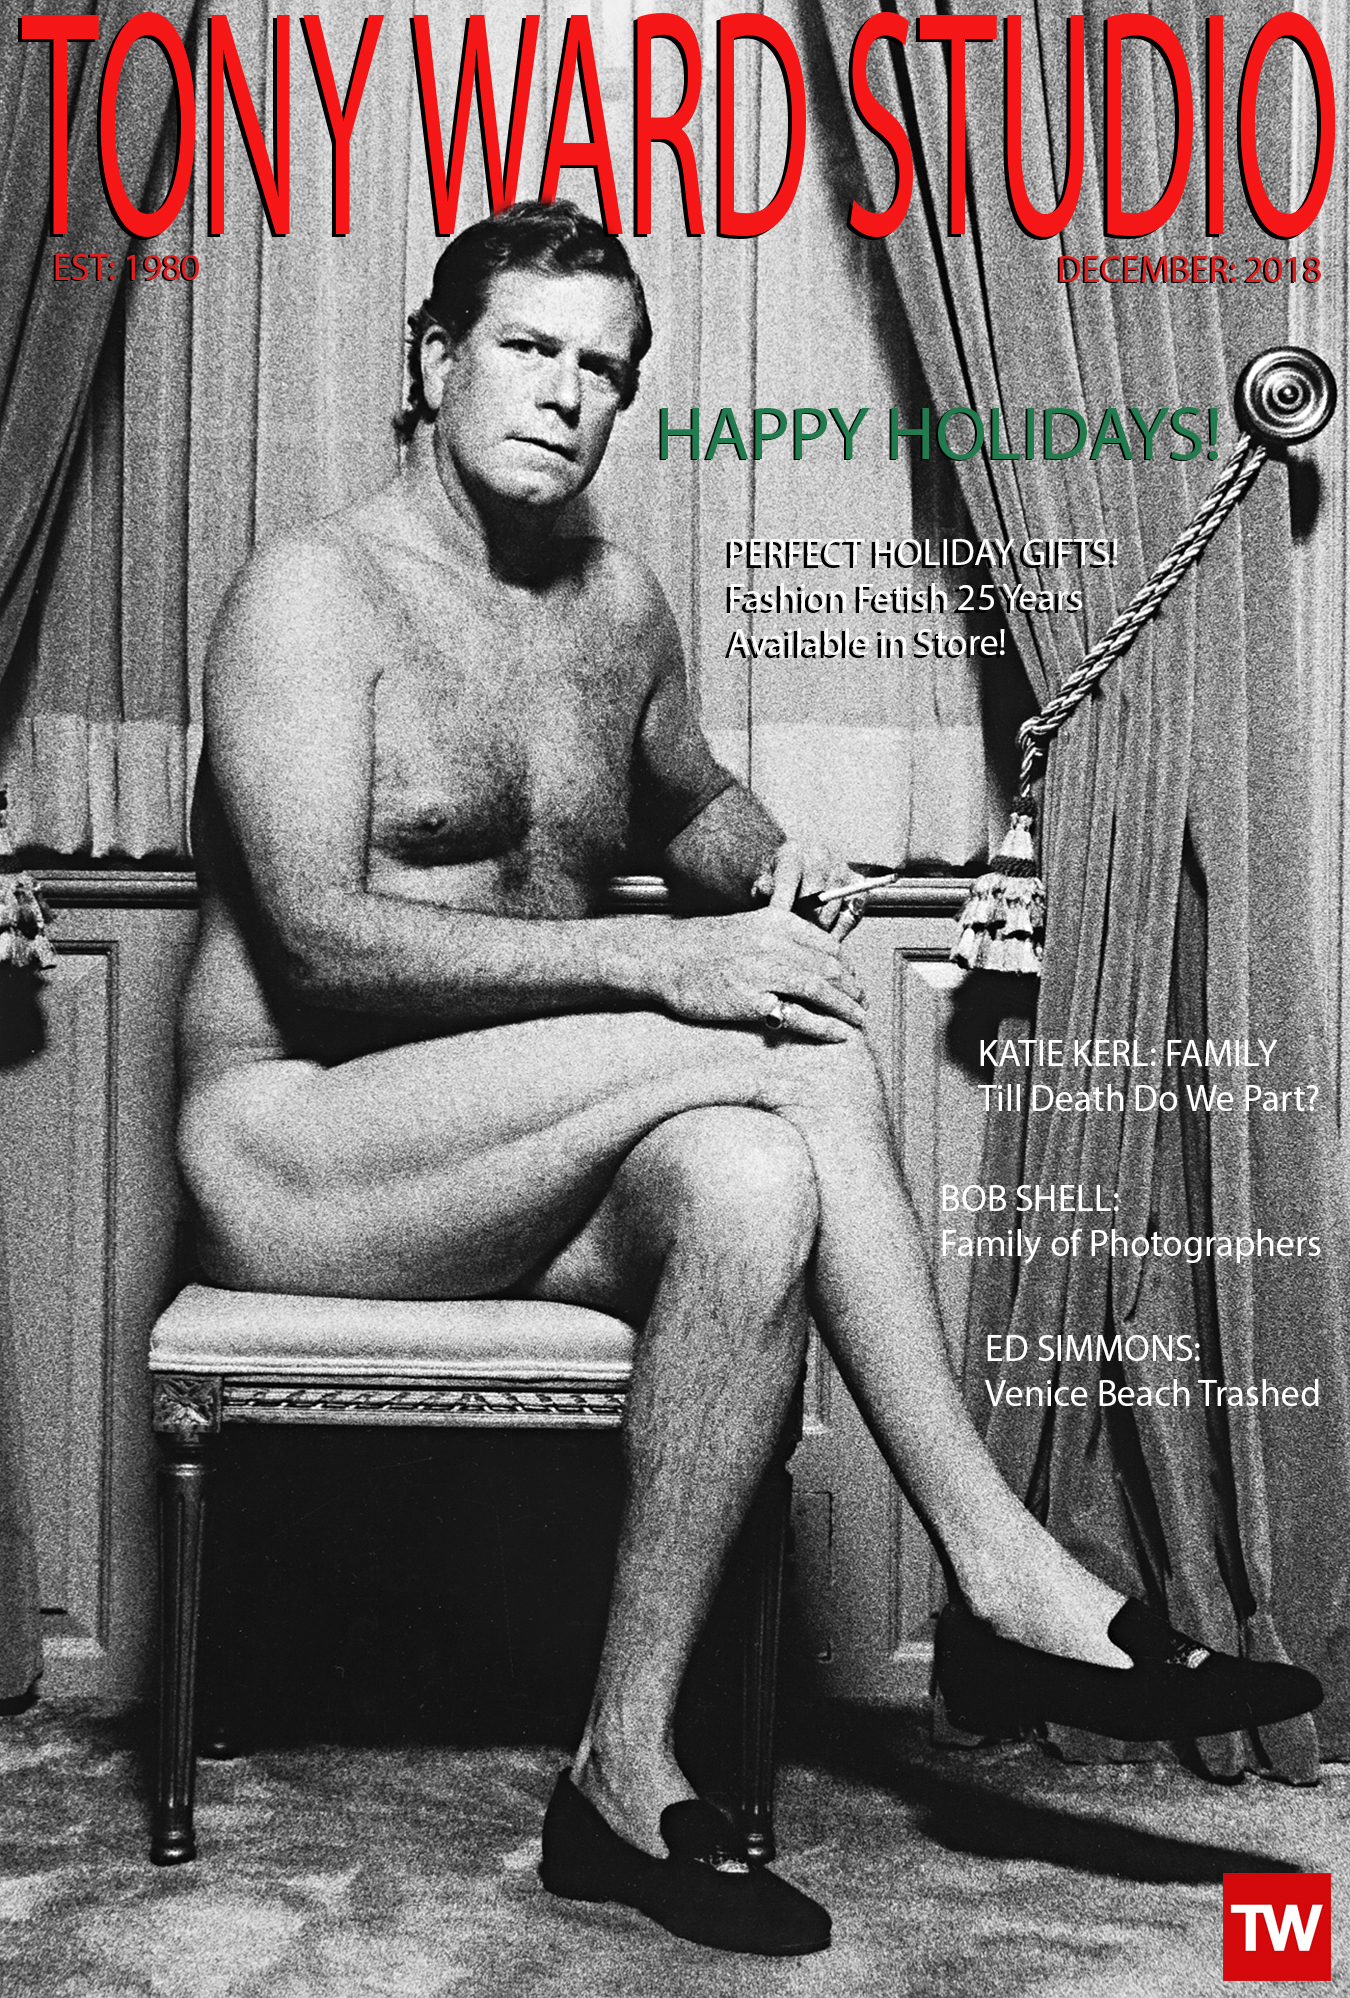 Tony_Ward_Studio_homepage_cover_December_2018_nude_male